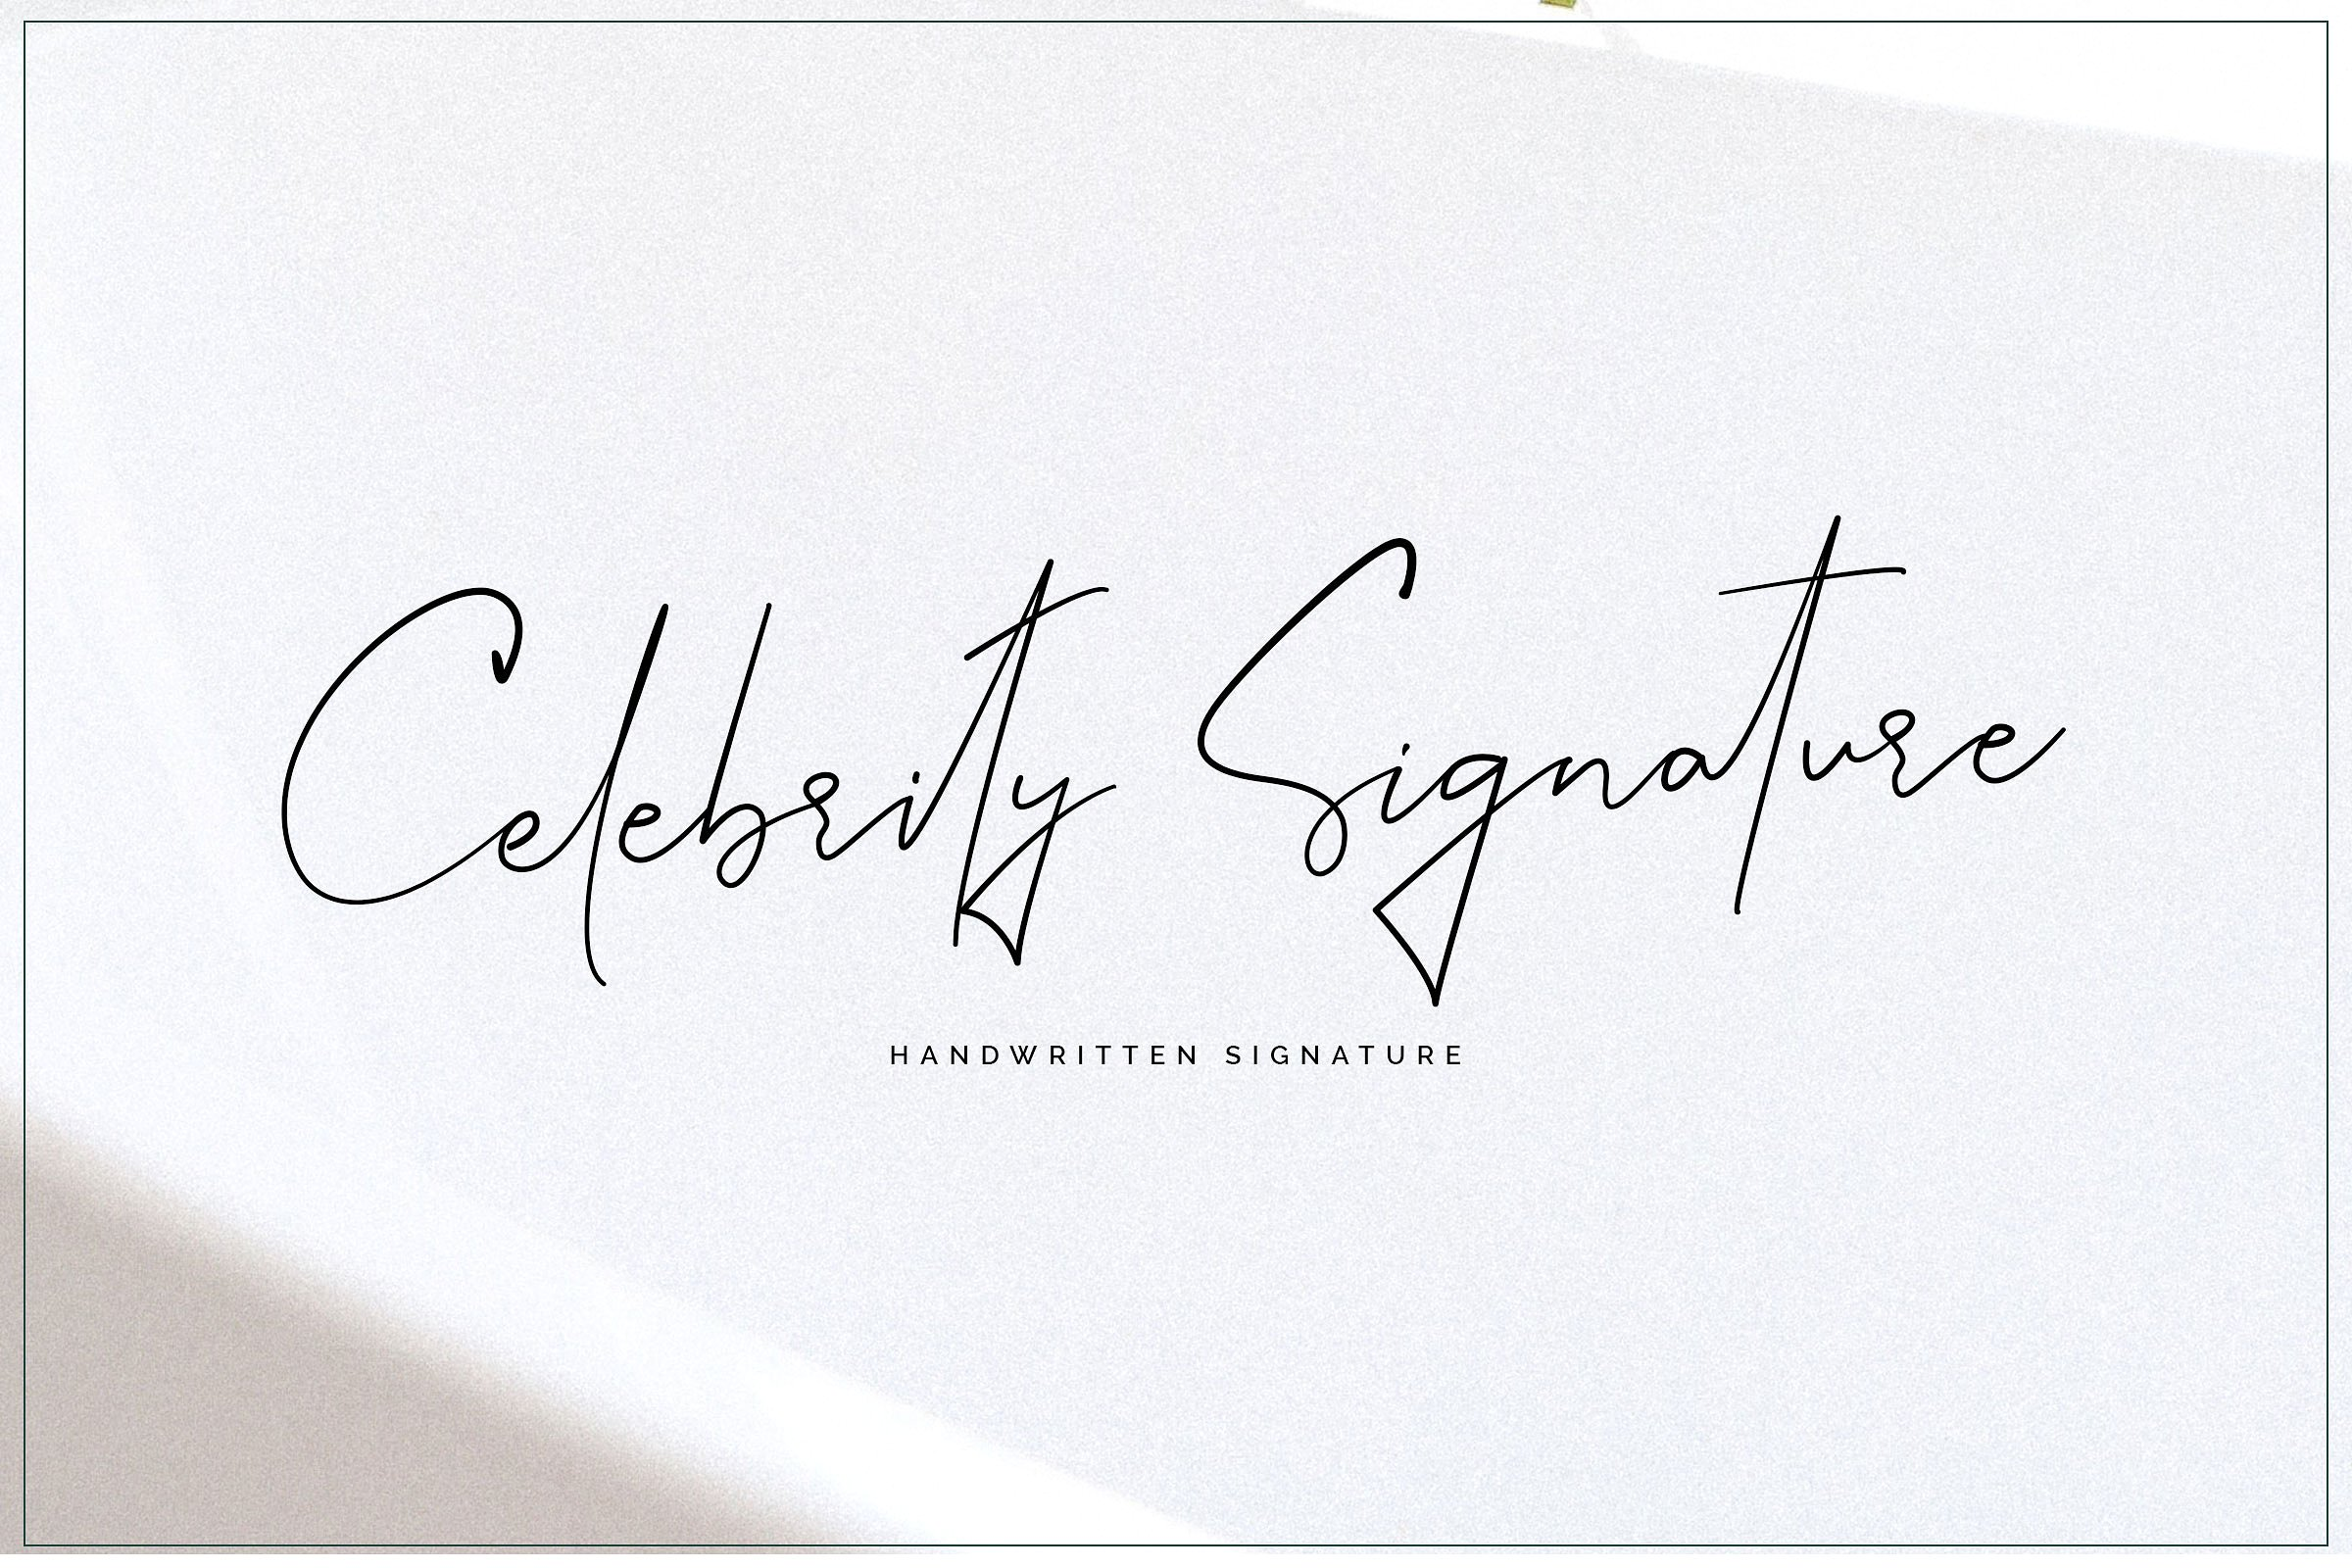 Celebrity Signature Font Handwritten Fonts, Alphabet Fonts, Free Fonts, Script Fonts, Modern Fonts, Cursive Fonts, Design Fonts, Rustic Fonts, Calligraphy Fonts, Simple Fonts, Typography, Serif Fonts, Elegant Fonts, Professional Fonts, Beautiful Fonts https://avemateiu.com/fonts/ *affiliate